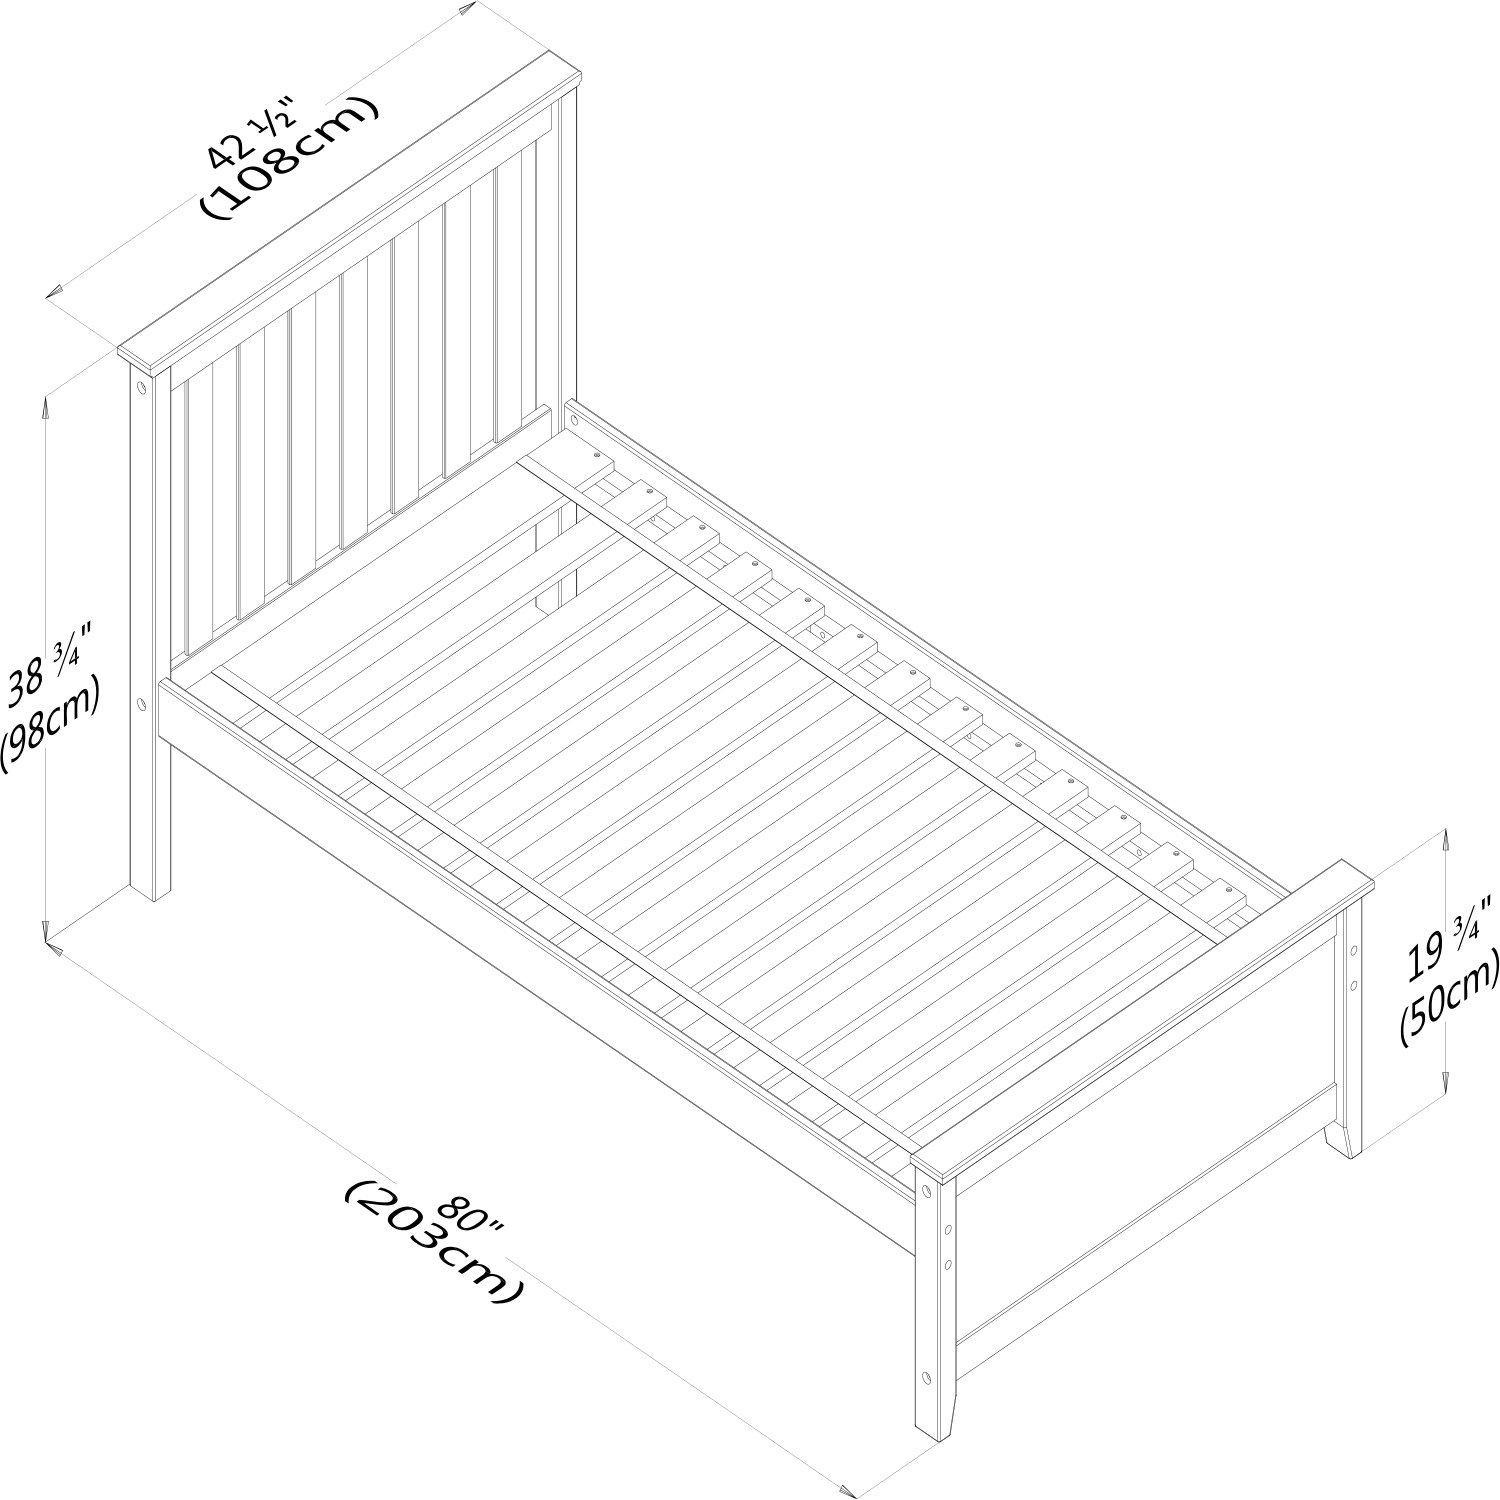 Max & Lily Solid Wood Twin-Size Bed with Under Bed Storage Drawers, Natural by Max & Lily (Image #10)